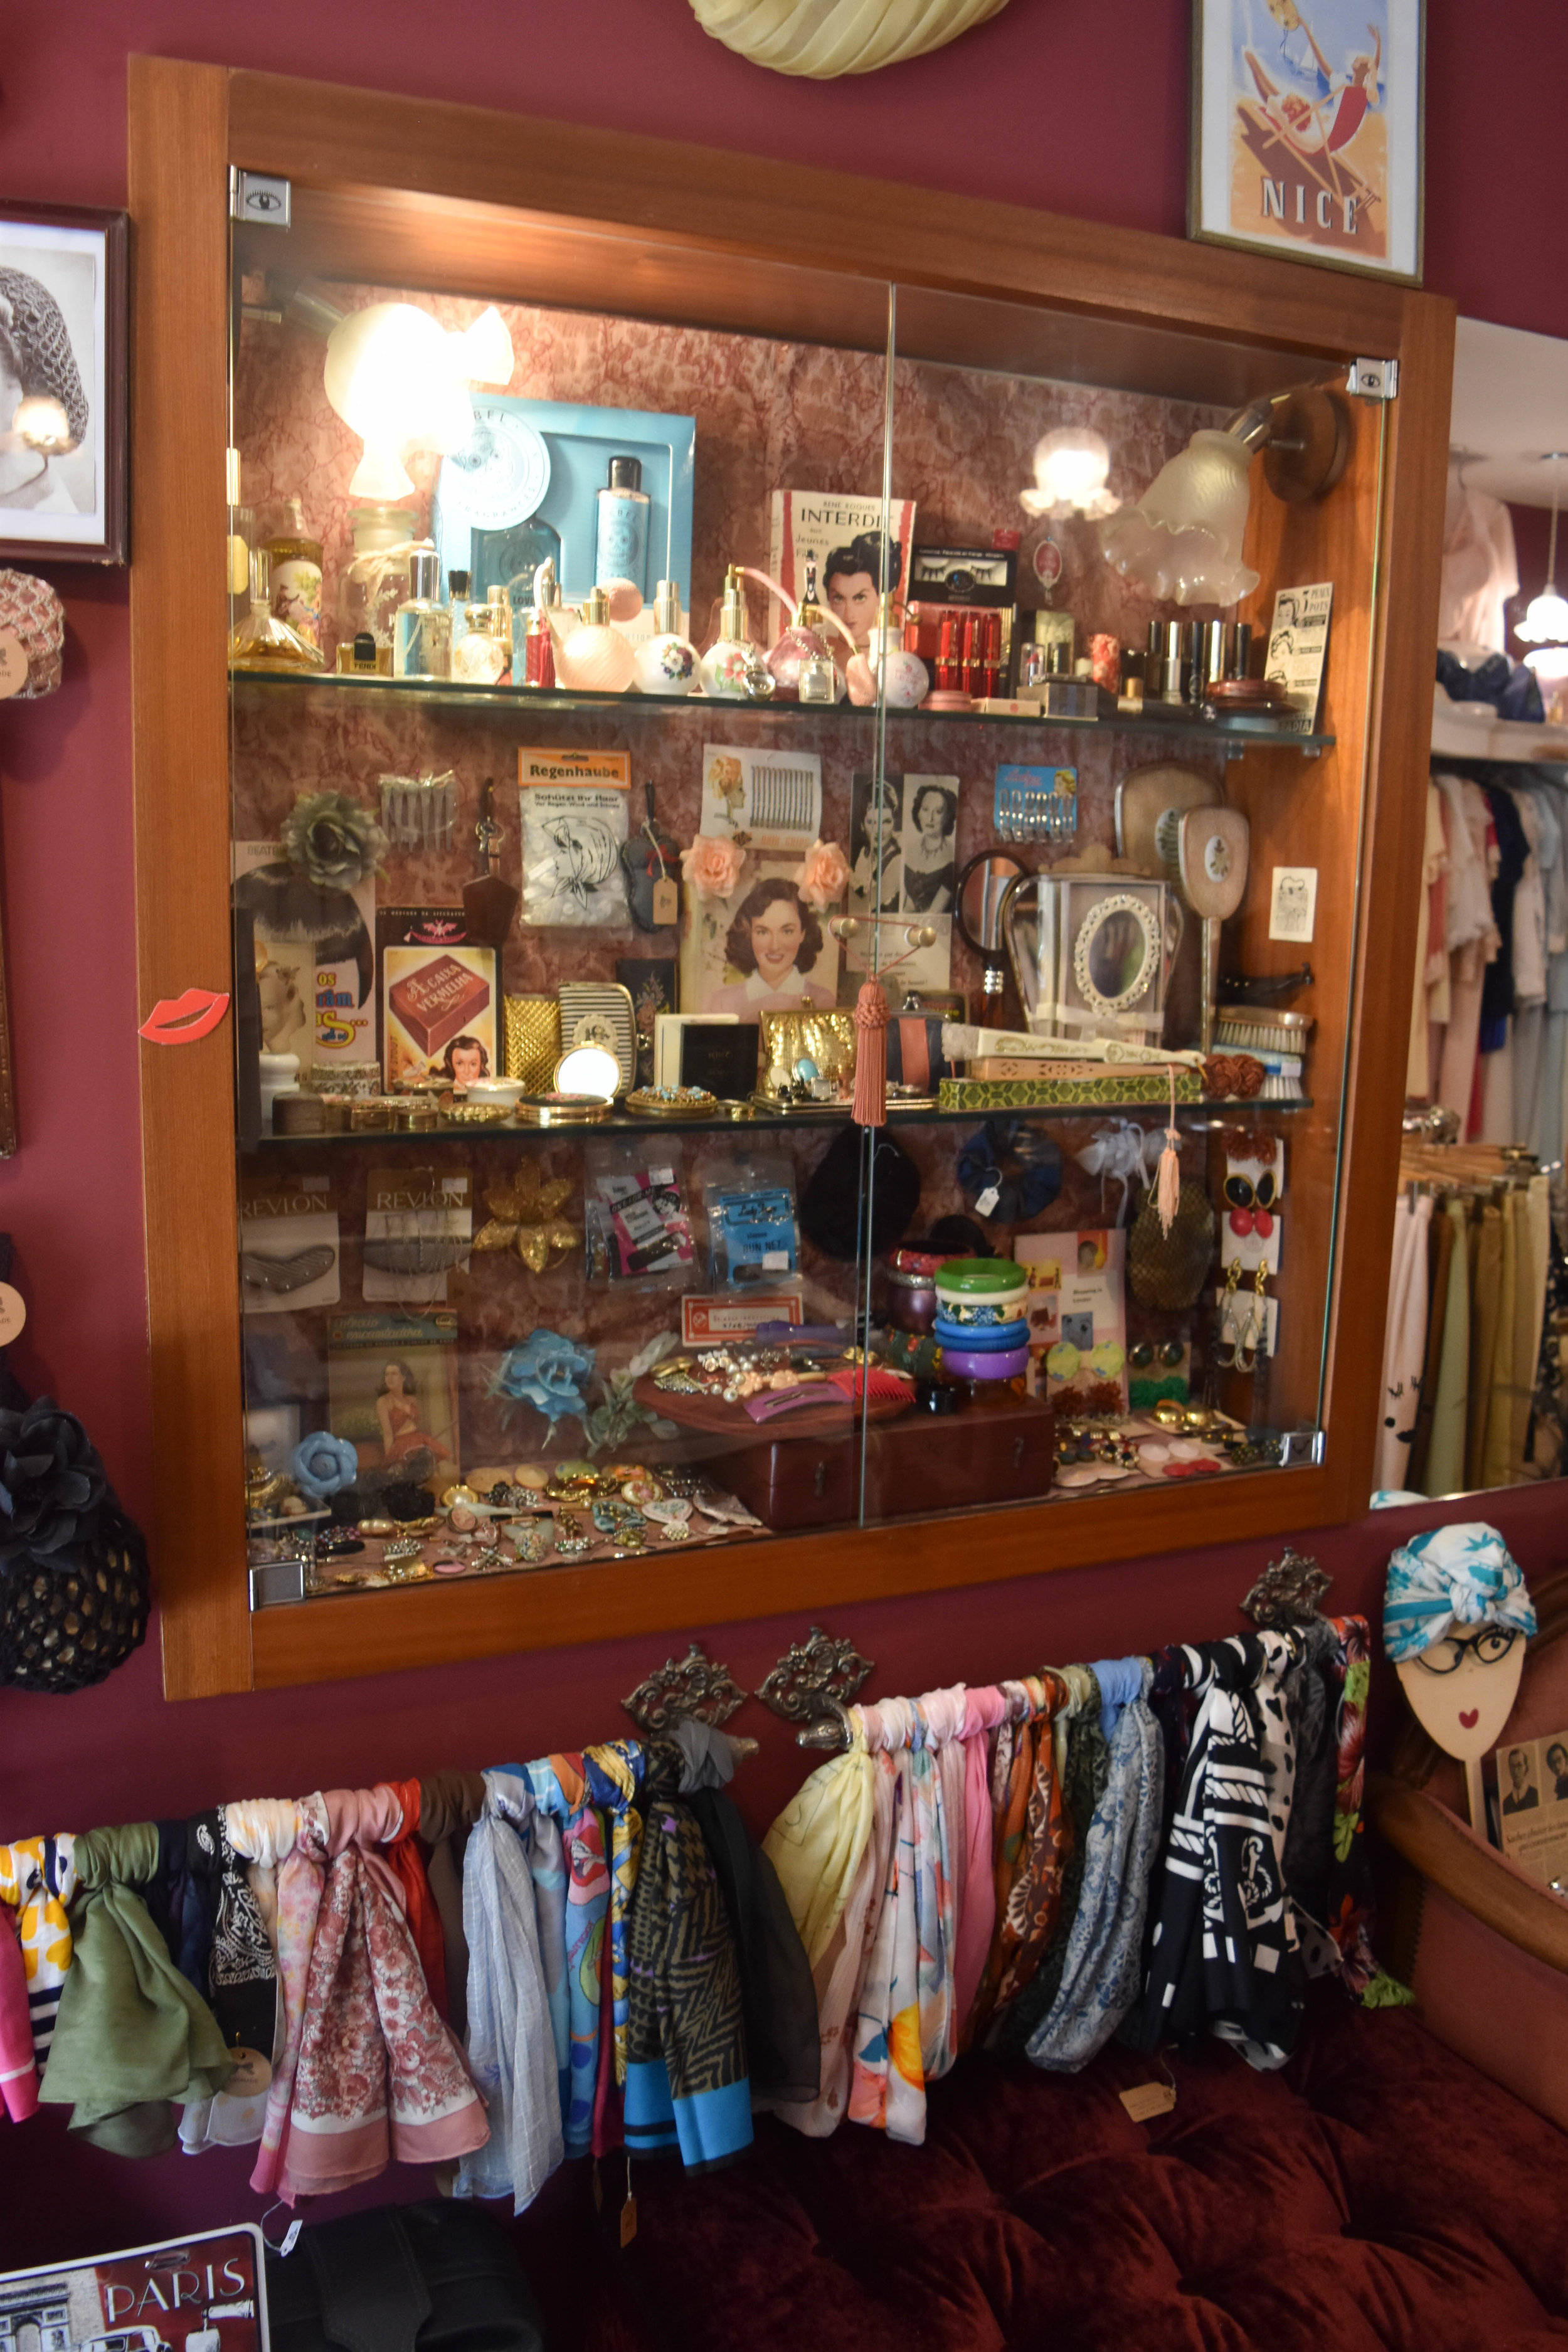 Old perfume bottles, hand mirrors, earrings, and scarves—I'd want all of these as souvenirs.